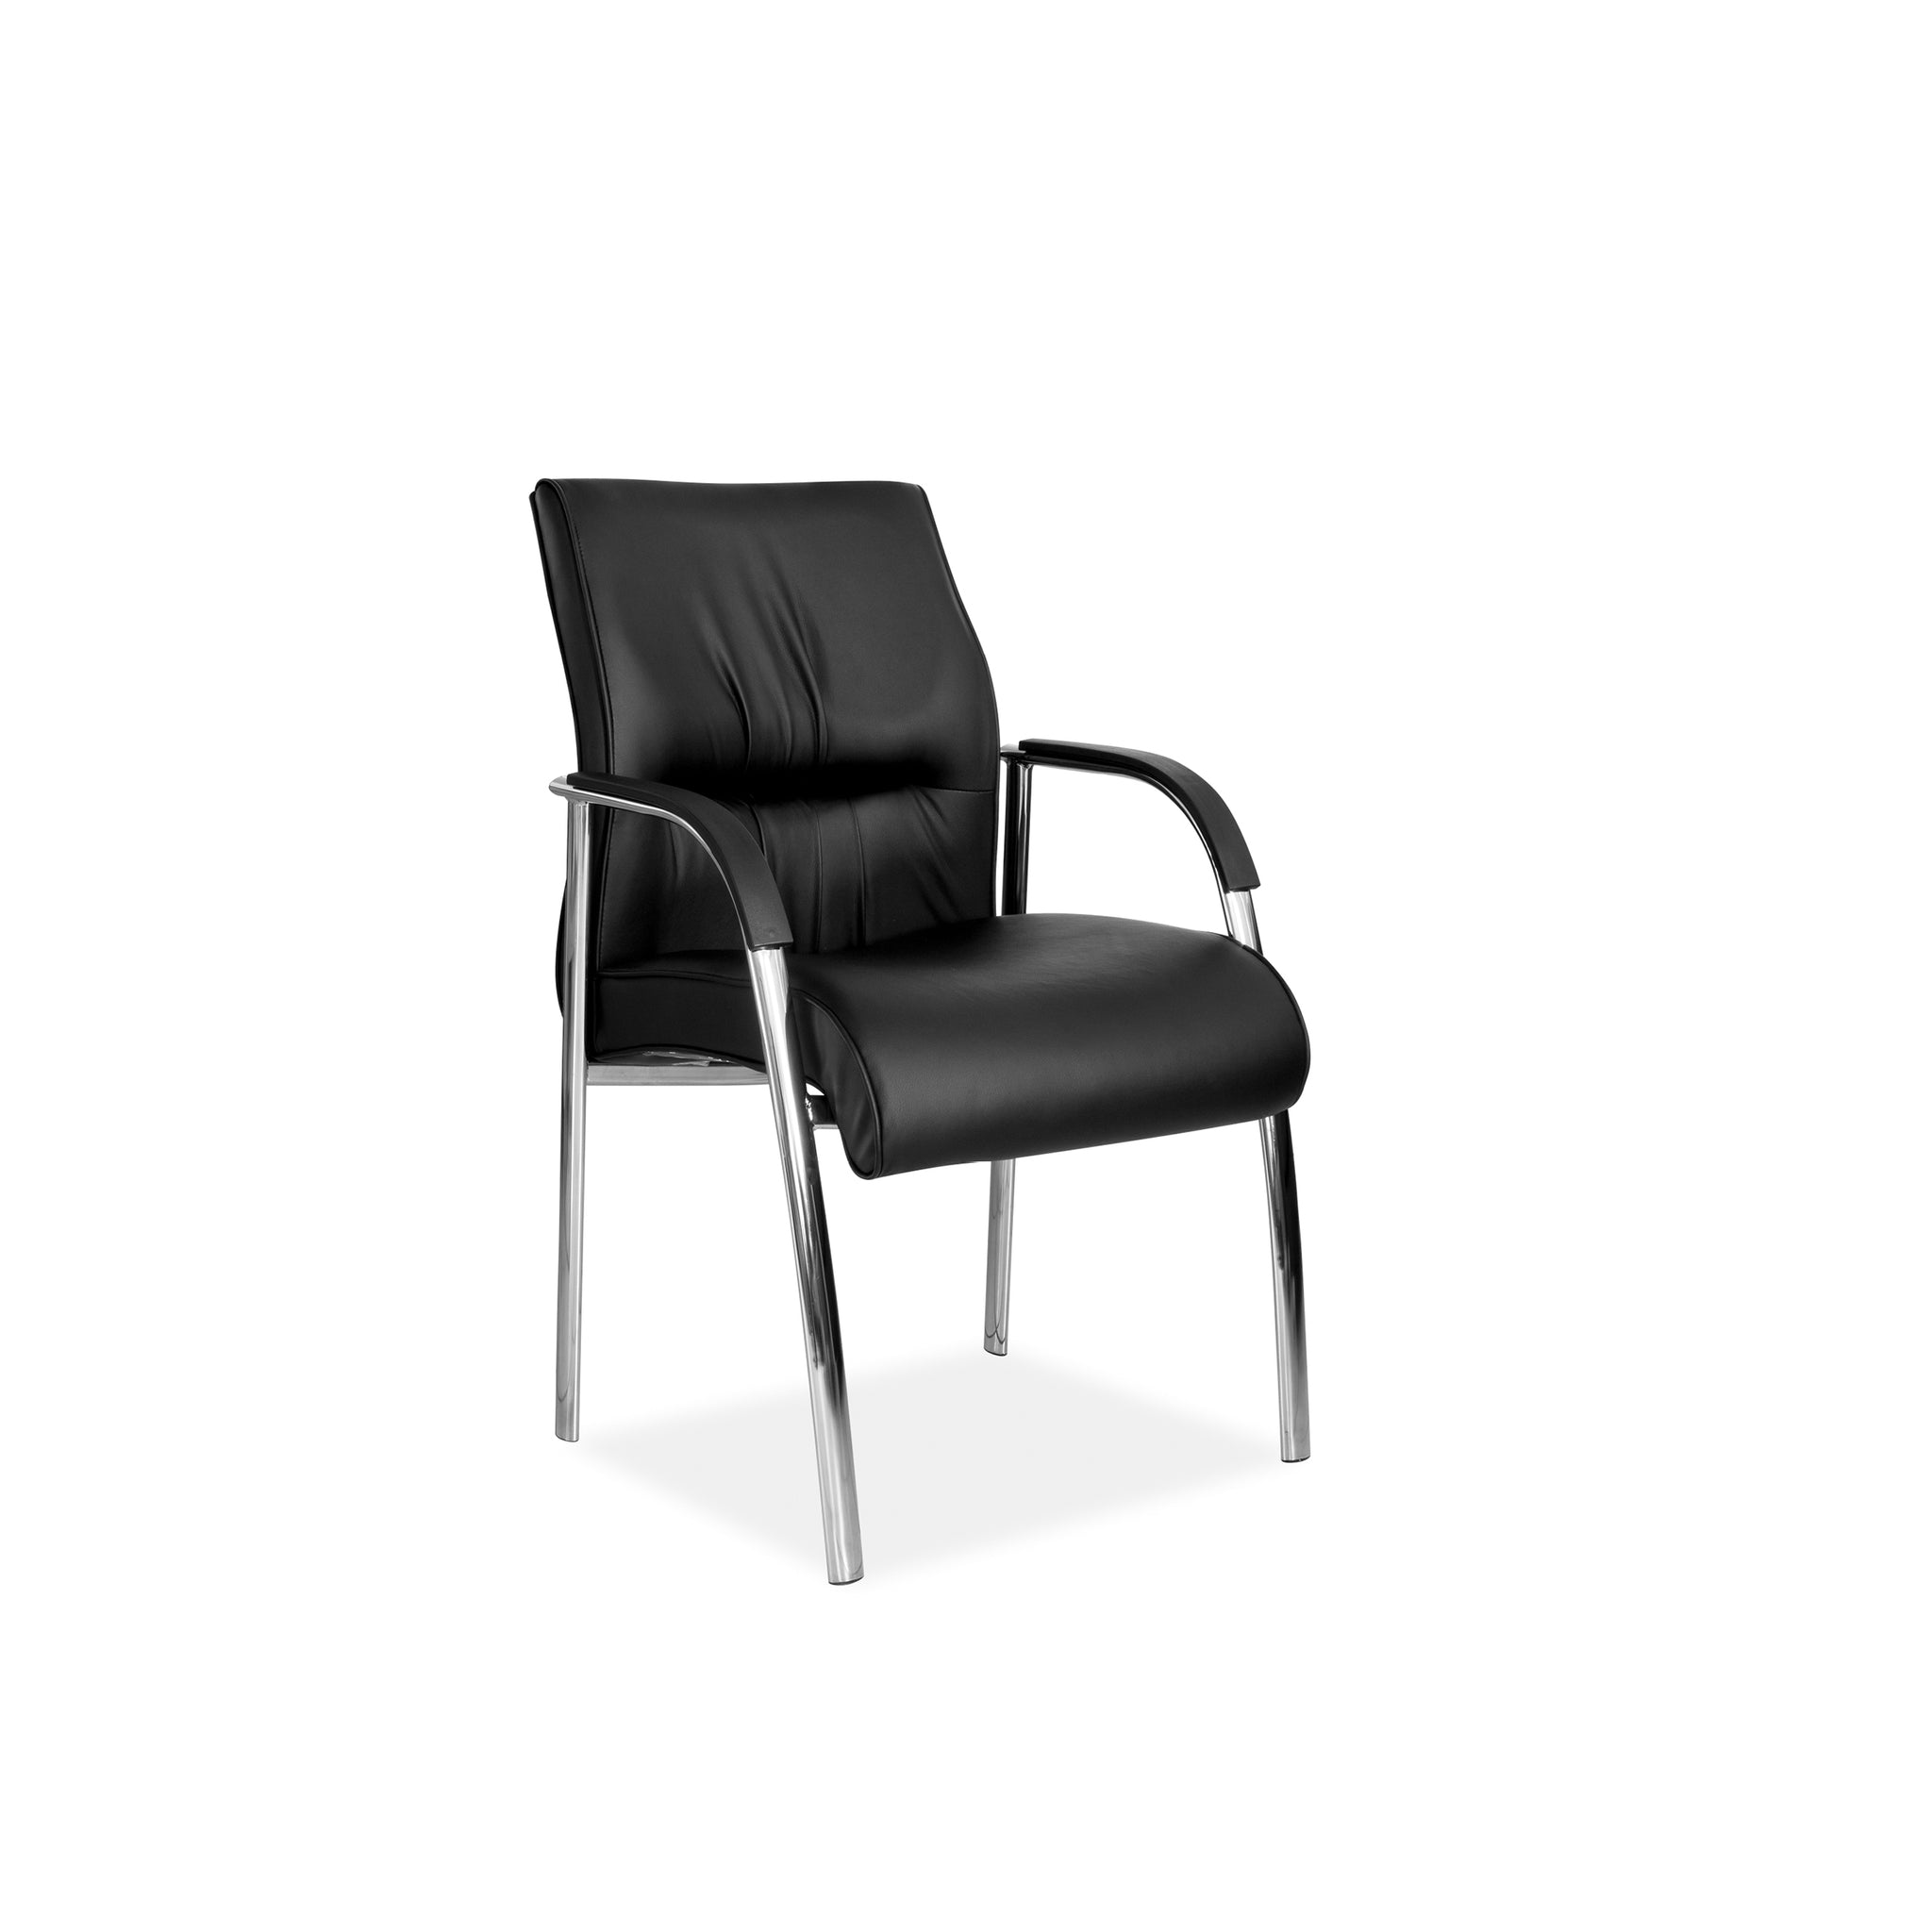 Hedcor Salvador Chrome office chair 4 legged